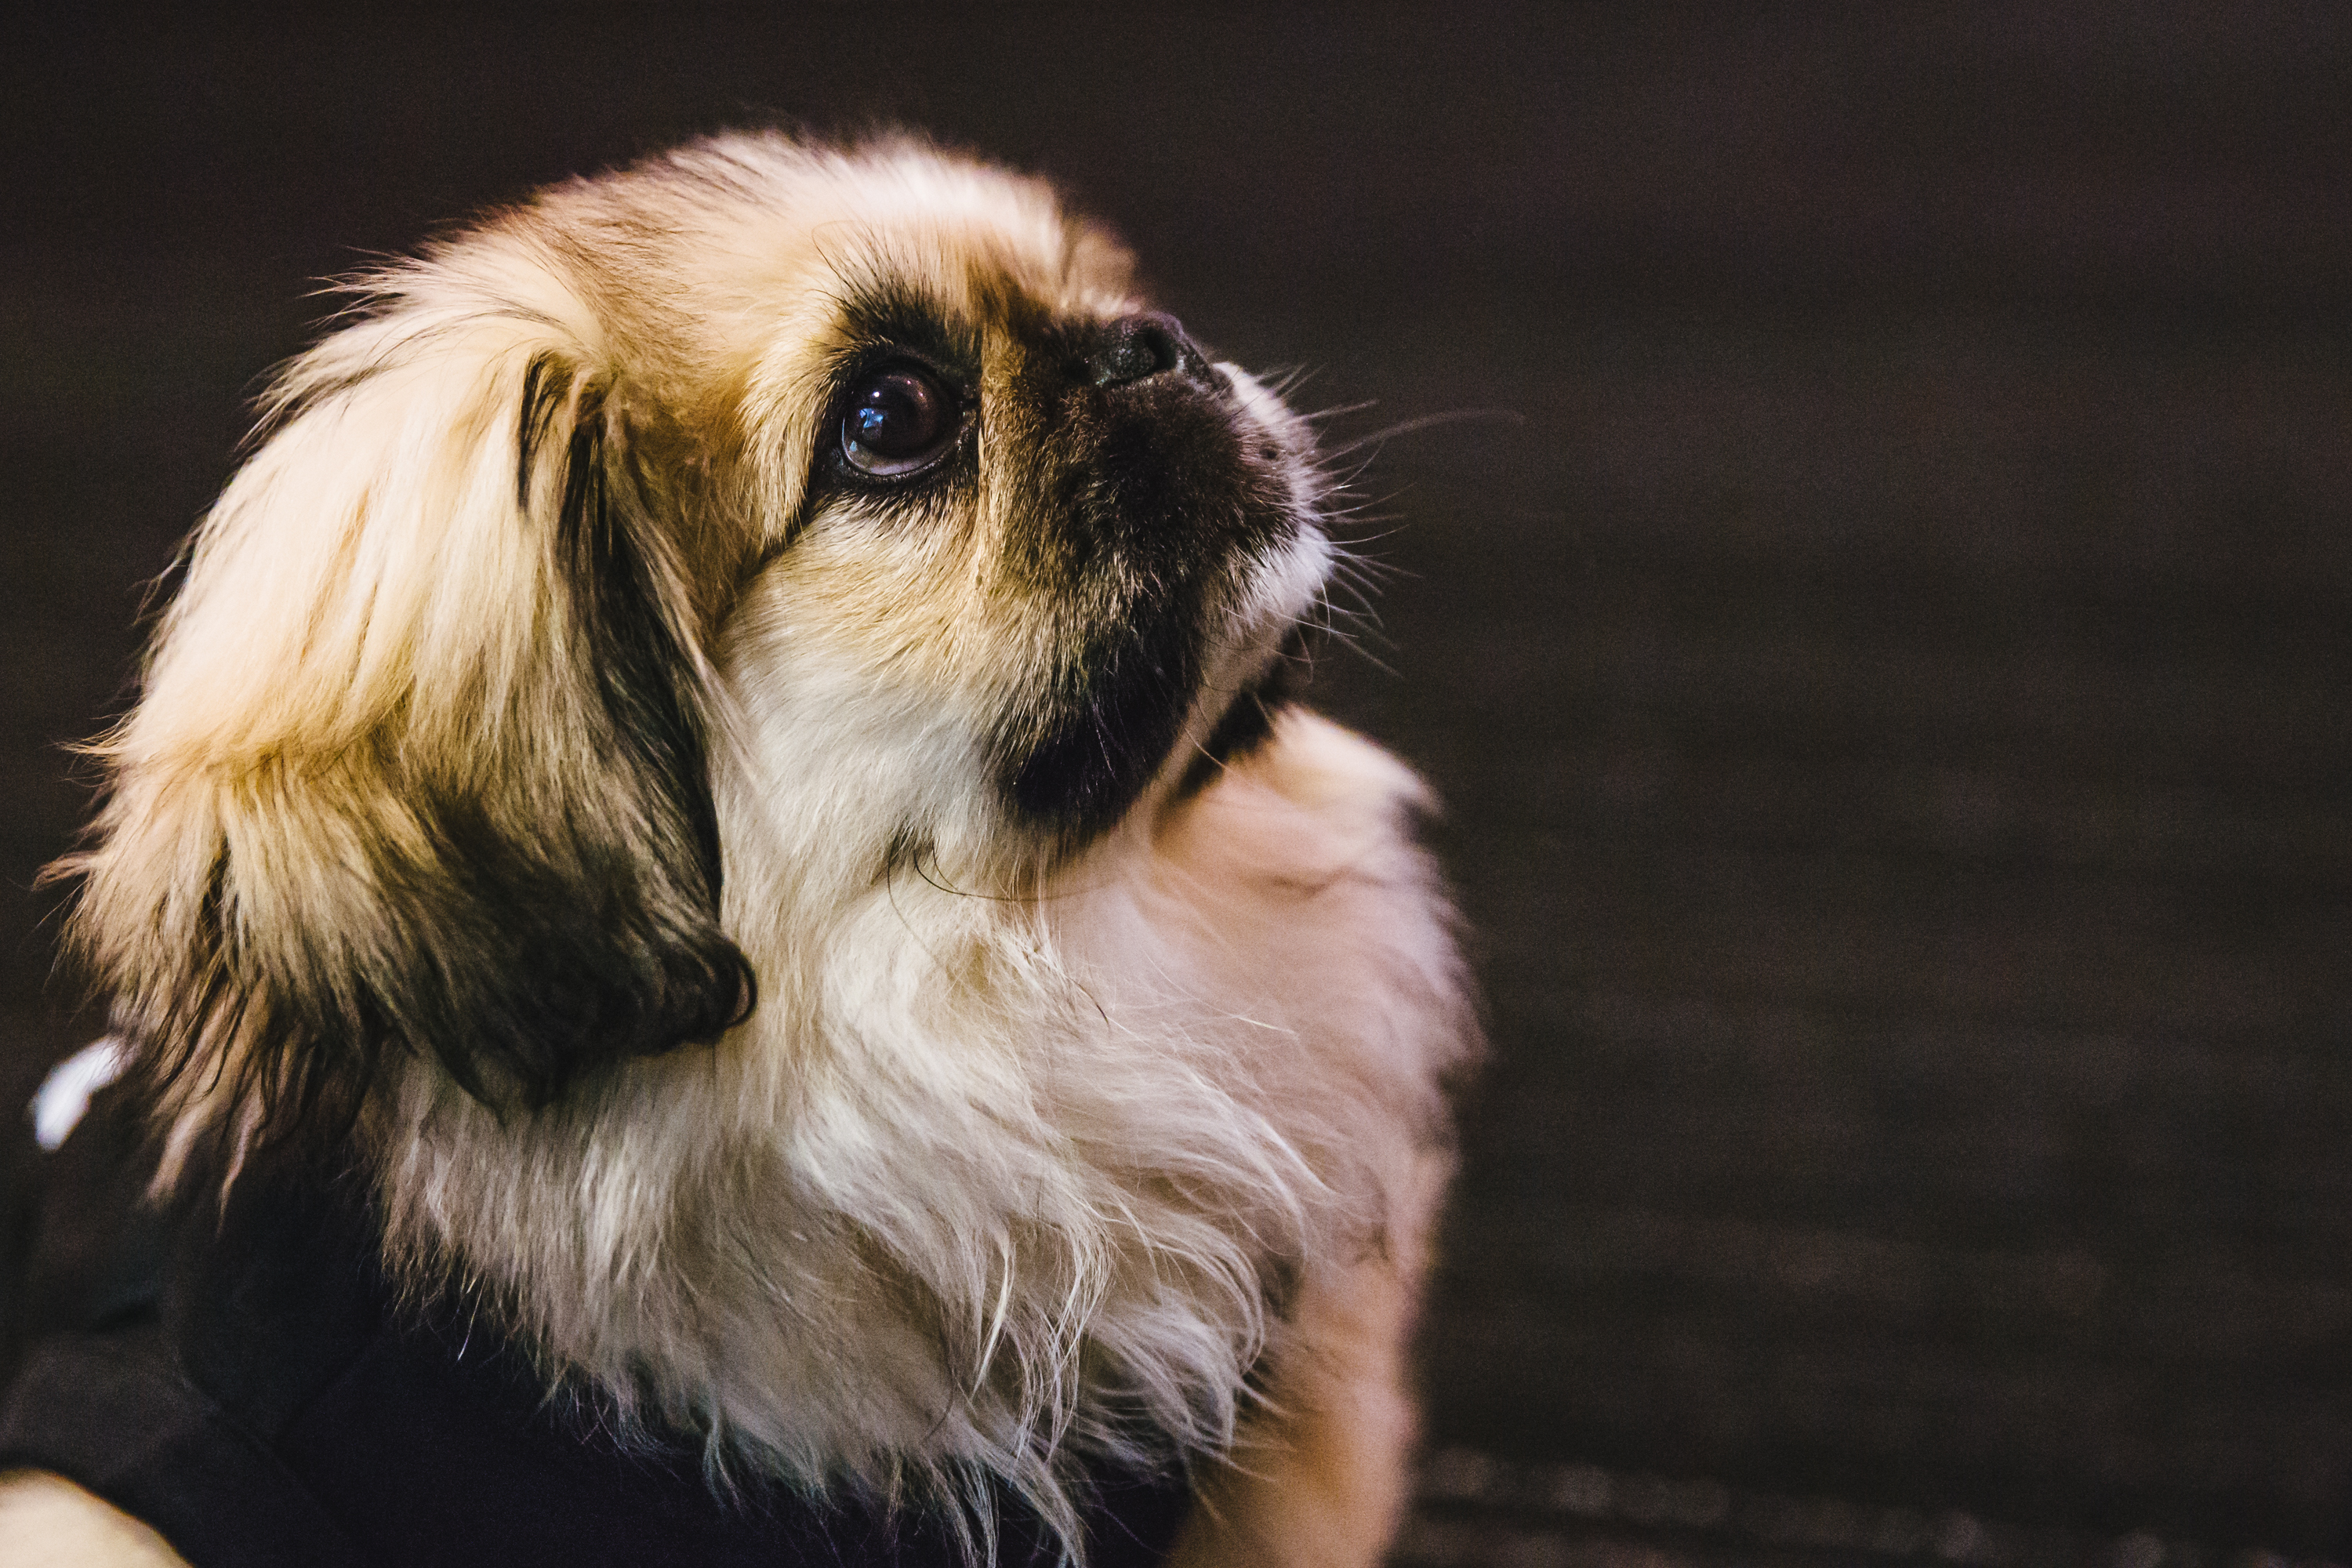 Everybody, meet Finn! He's the cutest Pekingese we've ever met. Finn is a four month old Pekingese who is already employed (we gotta go-getter over here) at The Mine. His job is to come into the office everyday and make each person's day brighter! So far he hasn't received a negative review. Thatta BOY, Finn! When he's not cuddled up on a desk taking a nap, you can find him running up and down the halls or posing for the camera (as you can tell he's a natural.) Finn has 400 people he works with and he makes time for everyone who needs a little cheering up! Finn likes playing with balls and toys, taking naps, and meeting new friends. The one, and only thing, he dislikes is peanut butter. The Seattle RUFFined Spotlight is a weekly profile of local pets living and loving life in the PNW. If you or someone you know has a pet you'd like featured, email us at hello@seattlerefined.com or tag #SeattleRUFFined and your furbaby could be the next spotlighted! (Image: Sunita Martini / Seattle Refined)